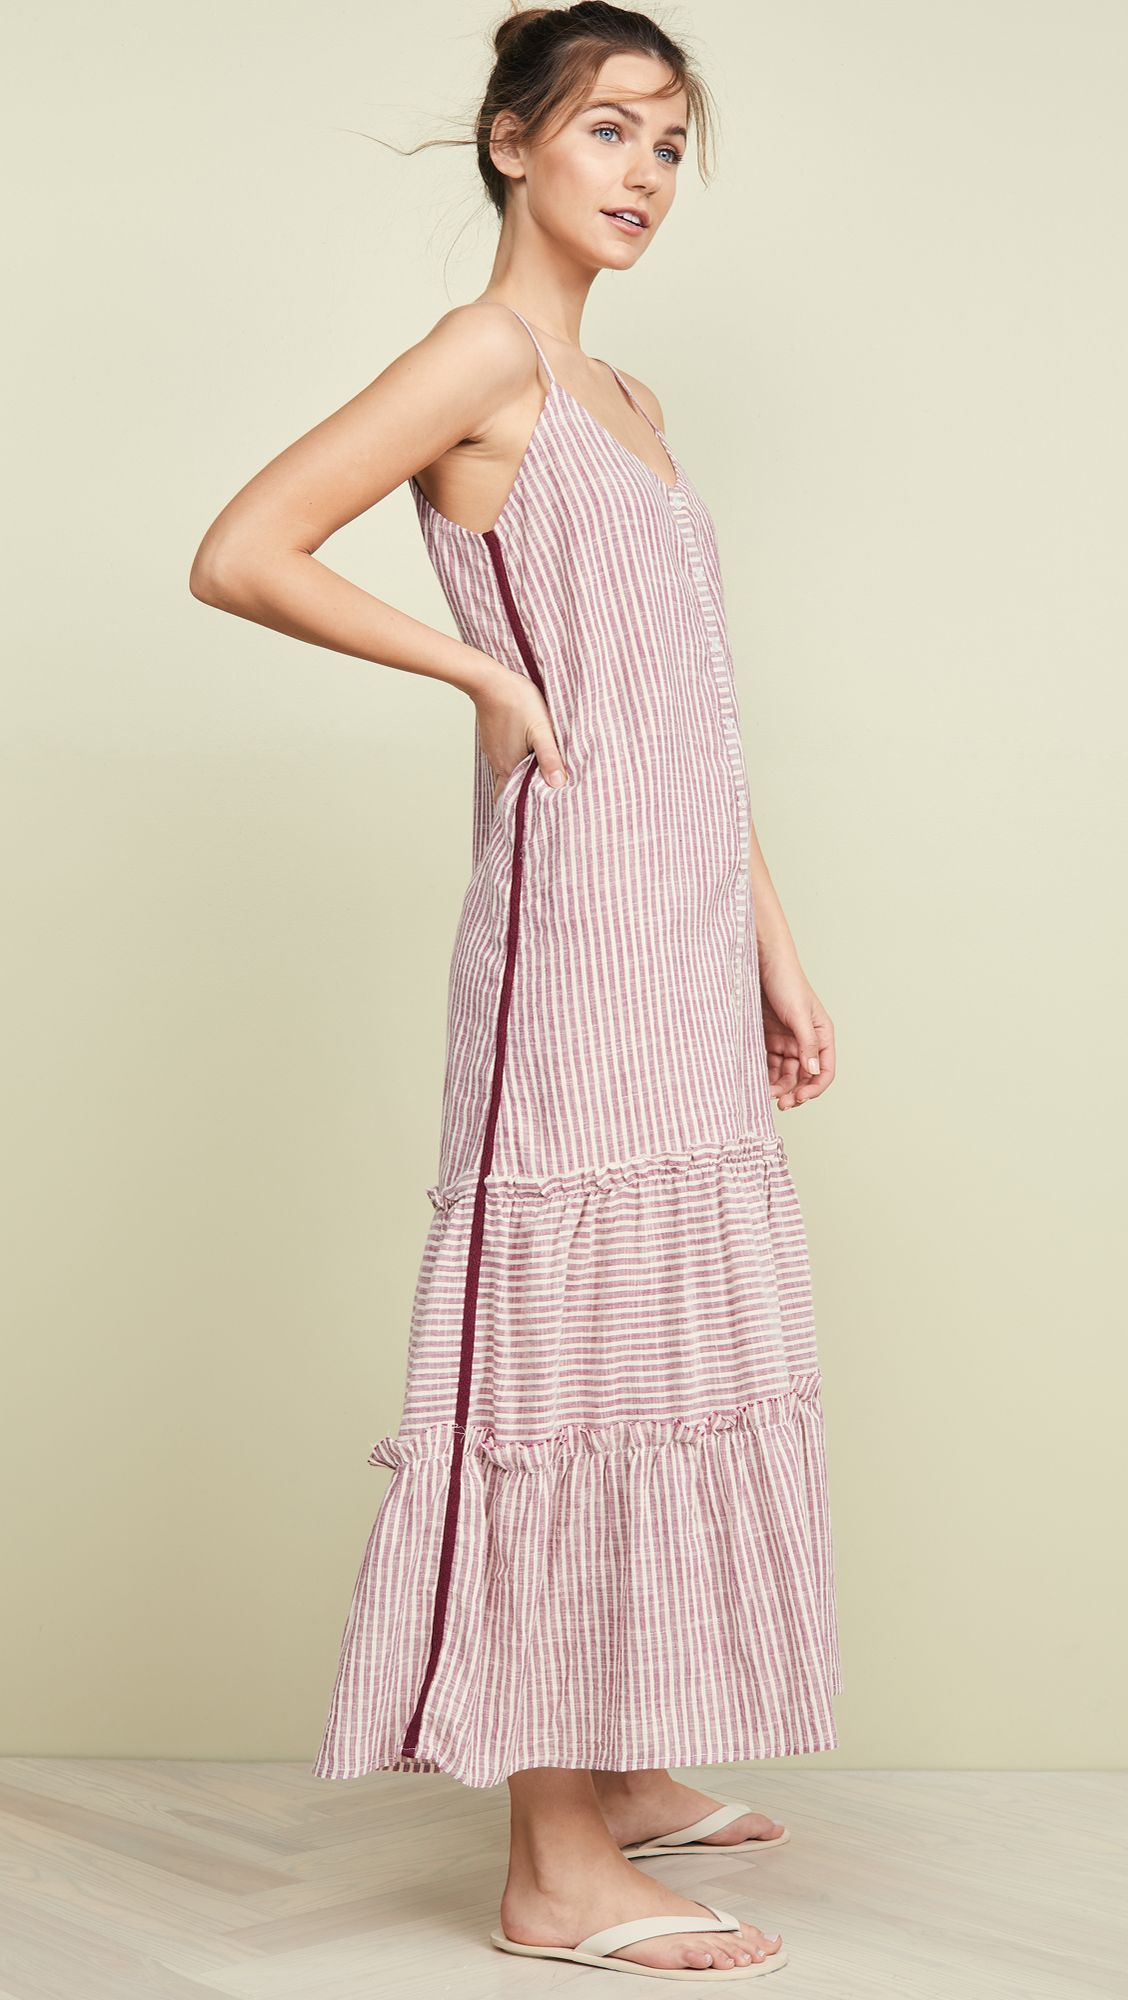 e72aefbff0f54 Ruffle Midi Dress in 2019 | Top Casual Dresses To Match Your Style ...